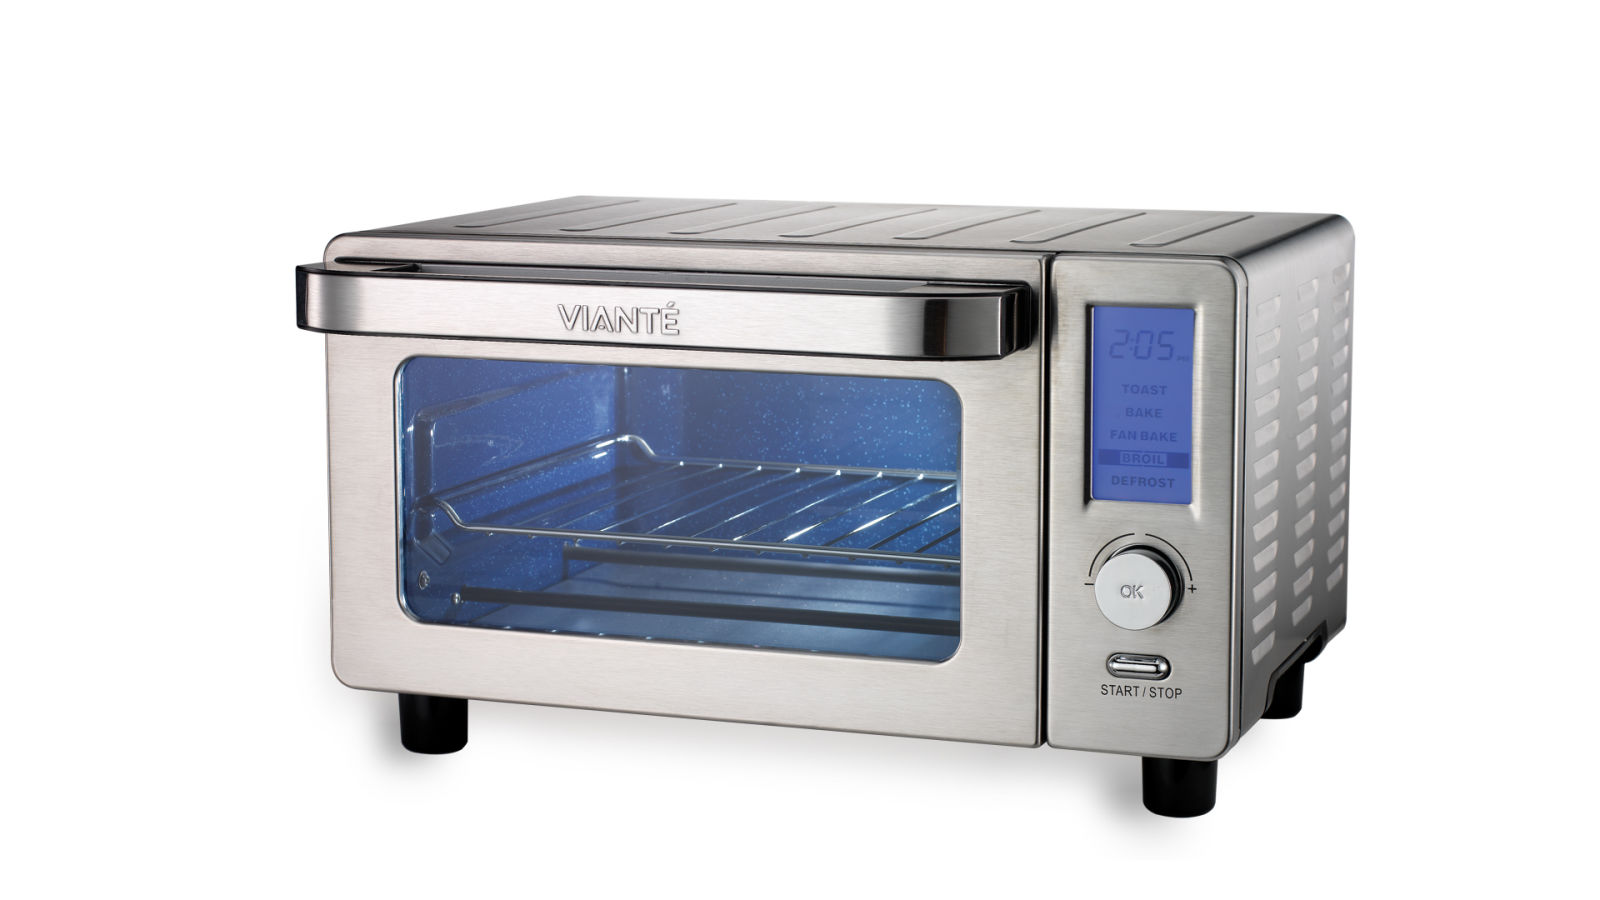 Viante True Blue Convection Toaster Oven CUC-04E Review